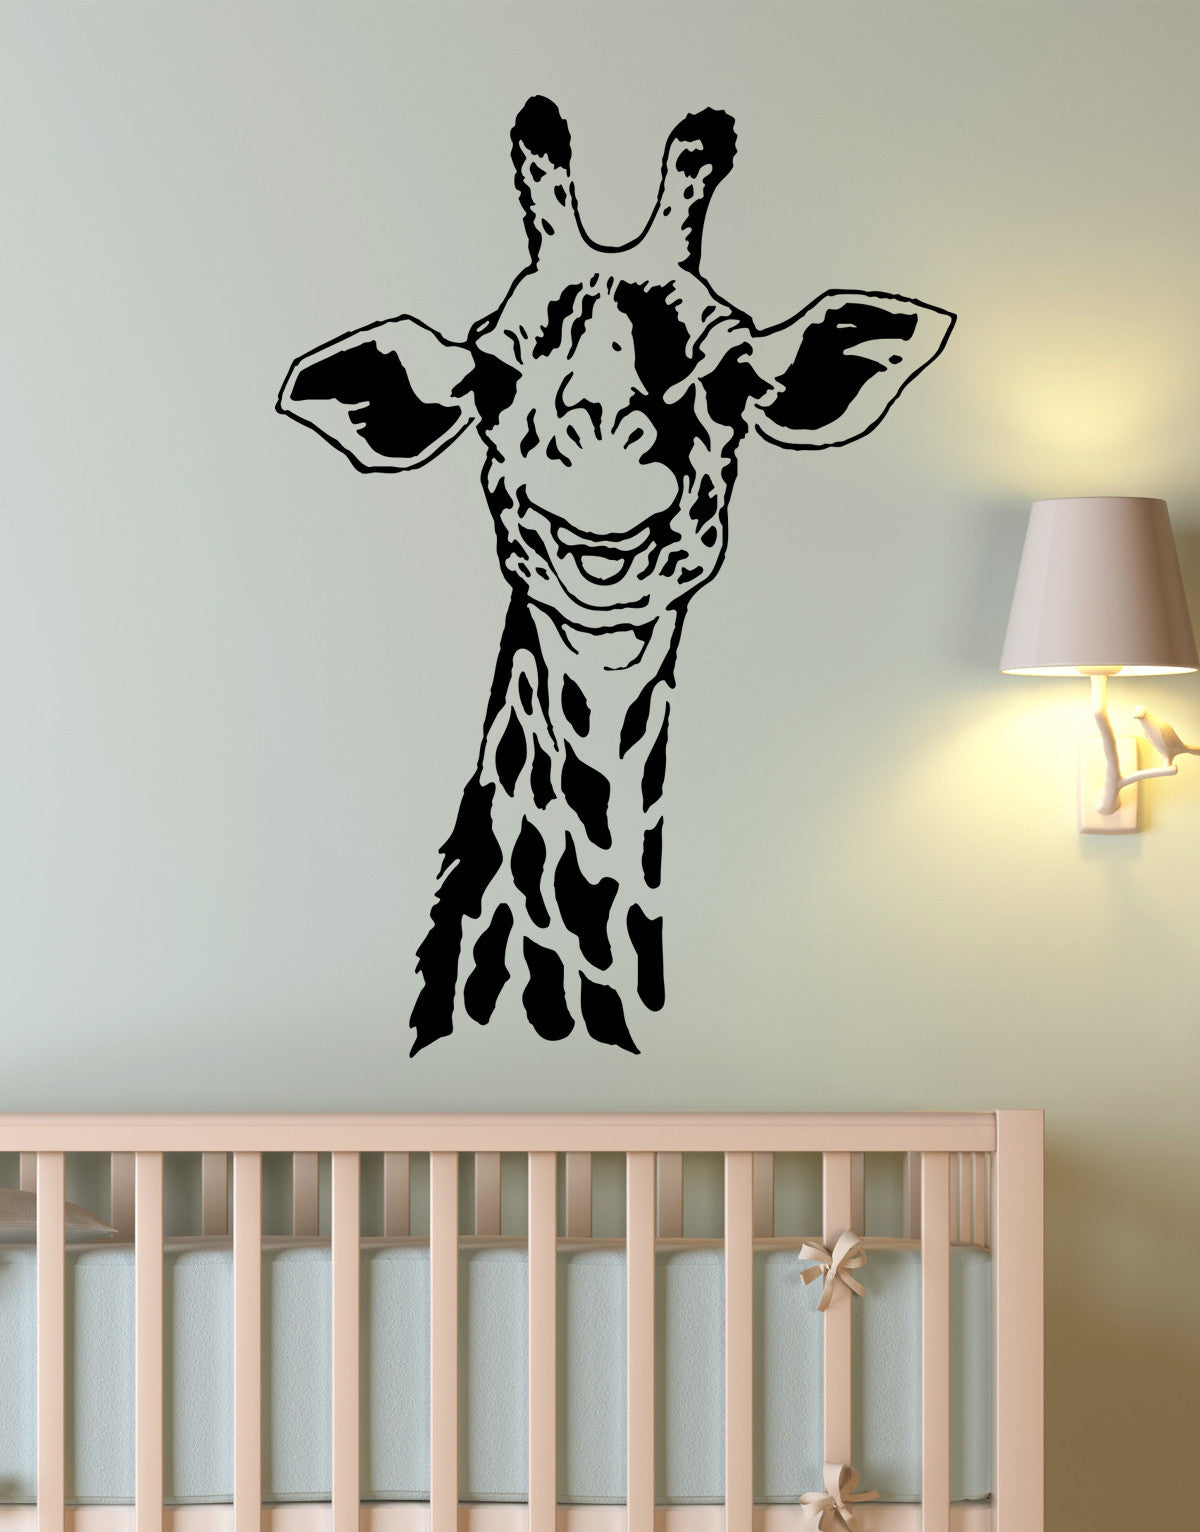 Vinyl Wall Art Decal Sticker Giraffe Neck for Kids Room #145